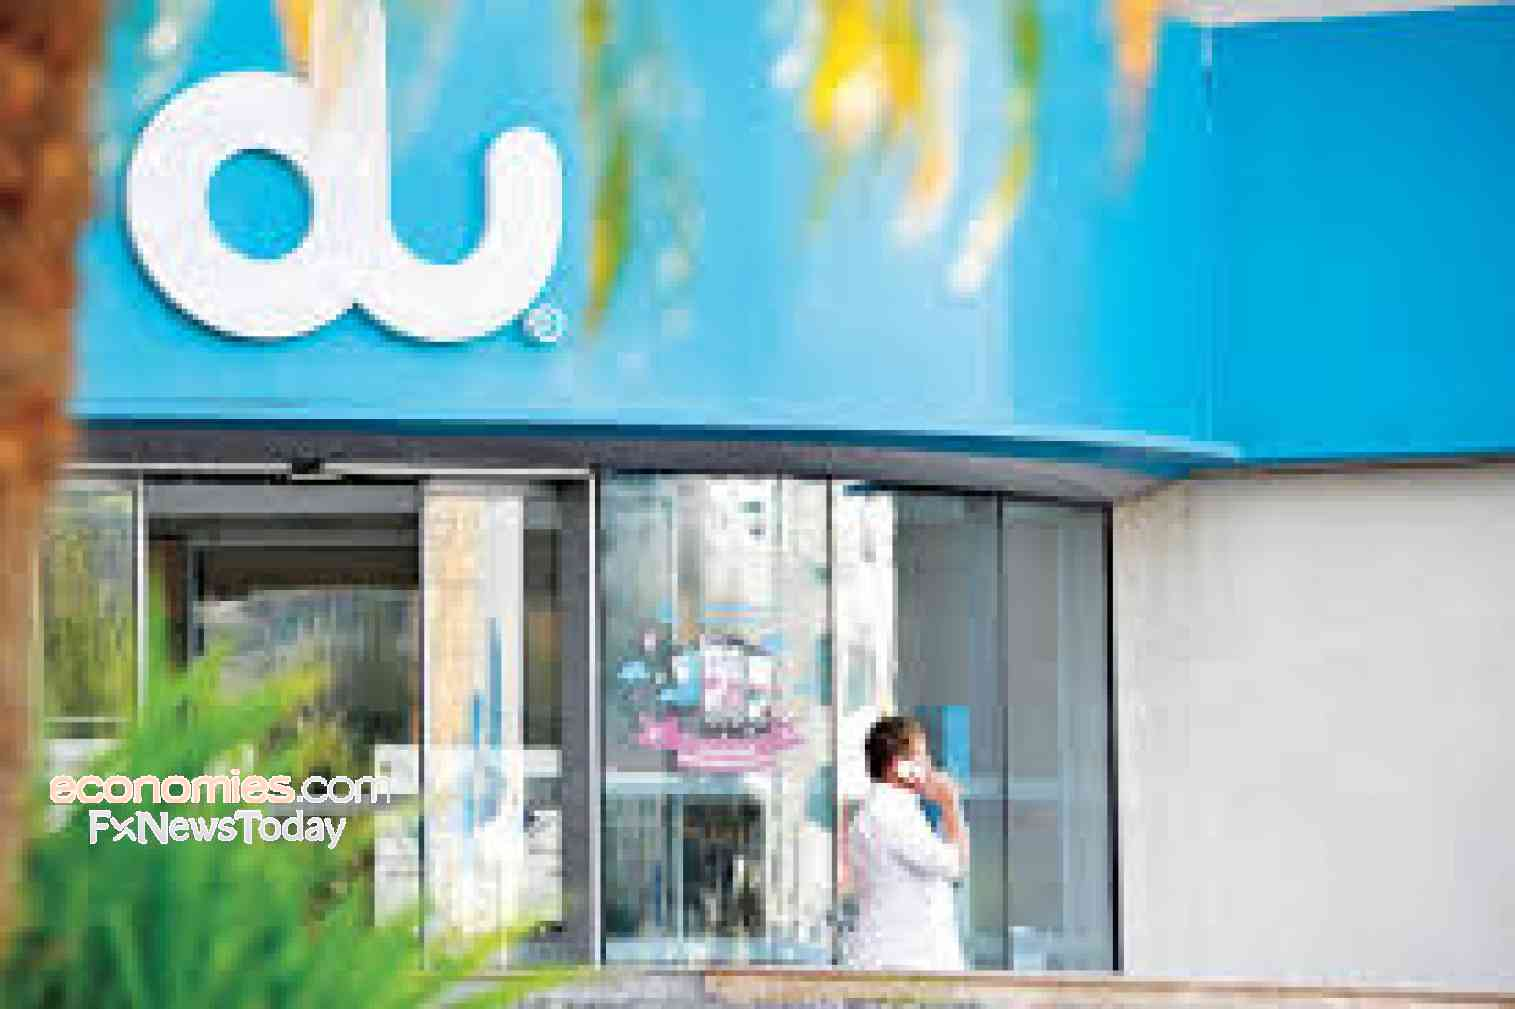 du shareholders approve AED0.22/share dividend for H2